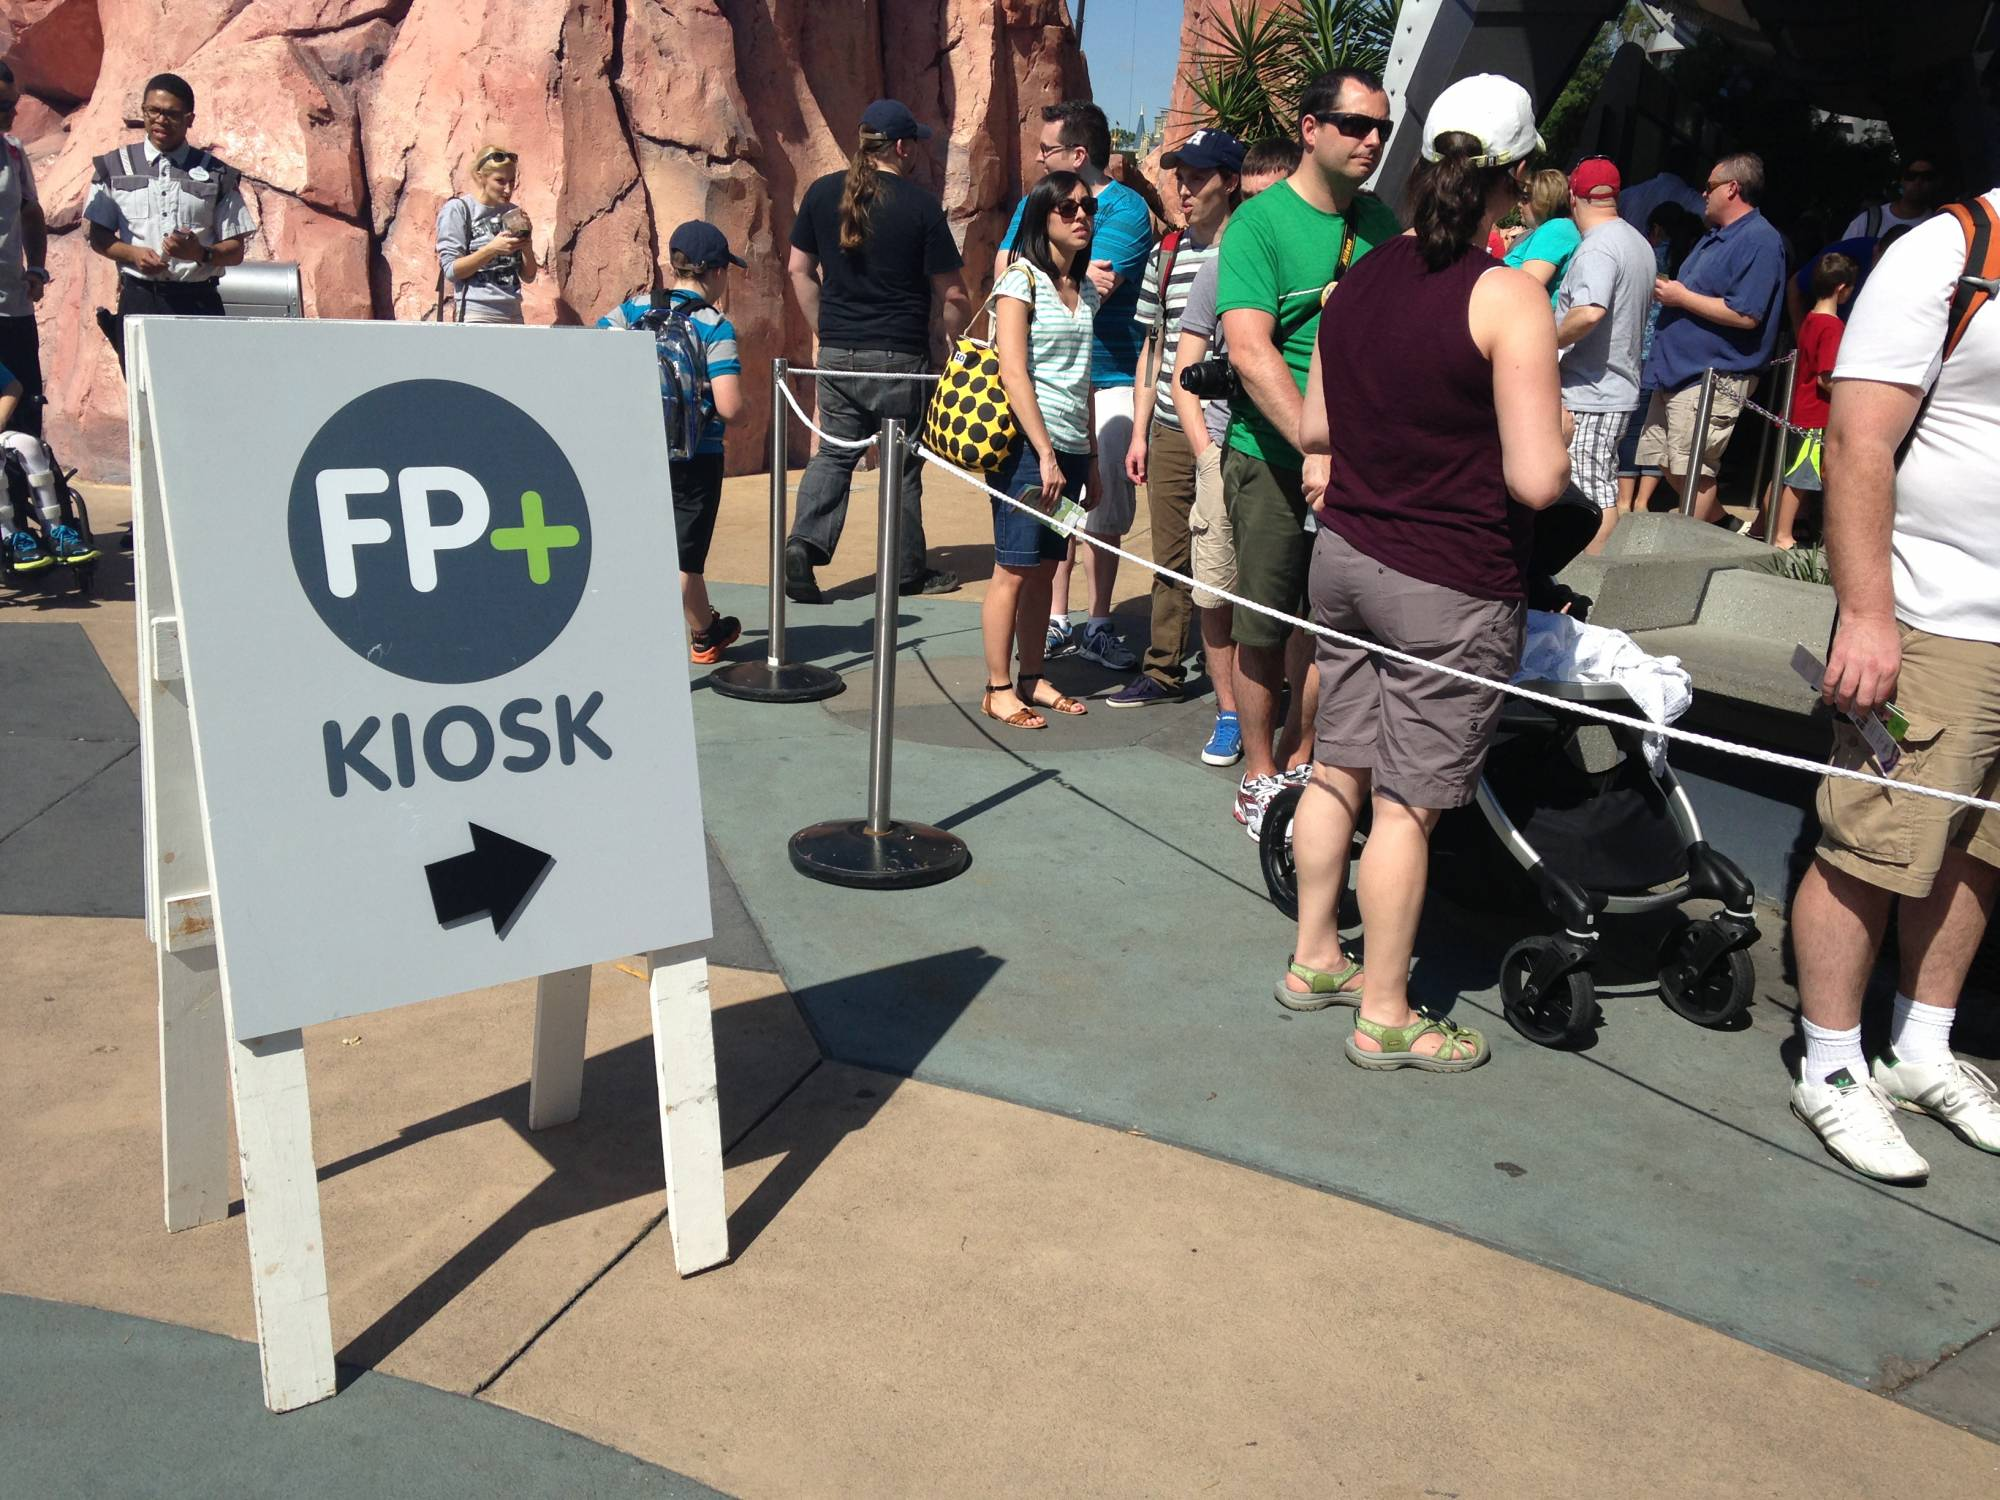 Find out how you can get more FastPasses per day at Walt Disney World. Great tips! |PassPorter.com